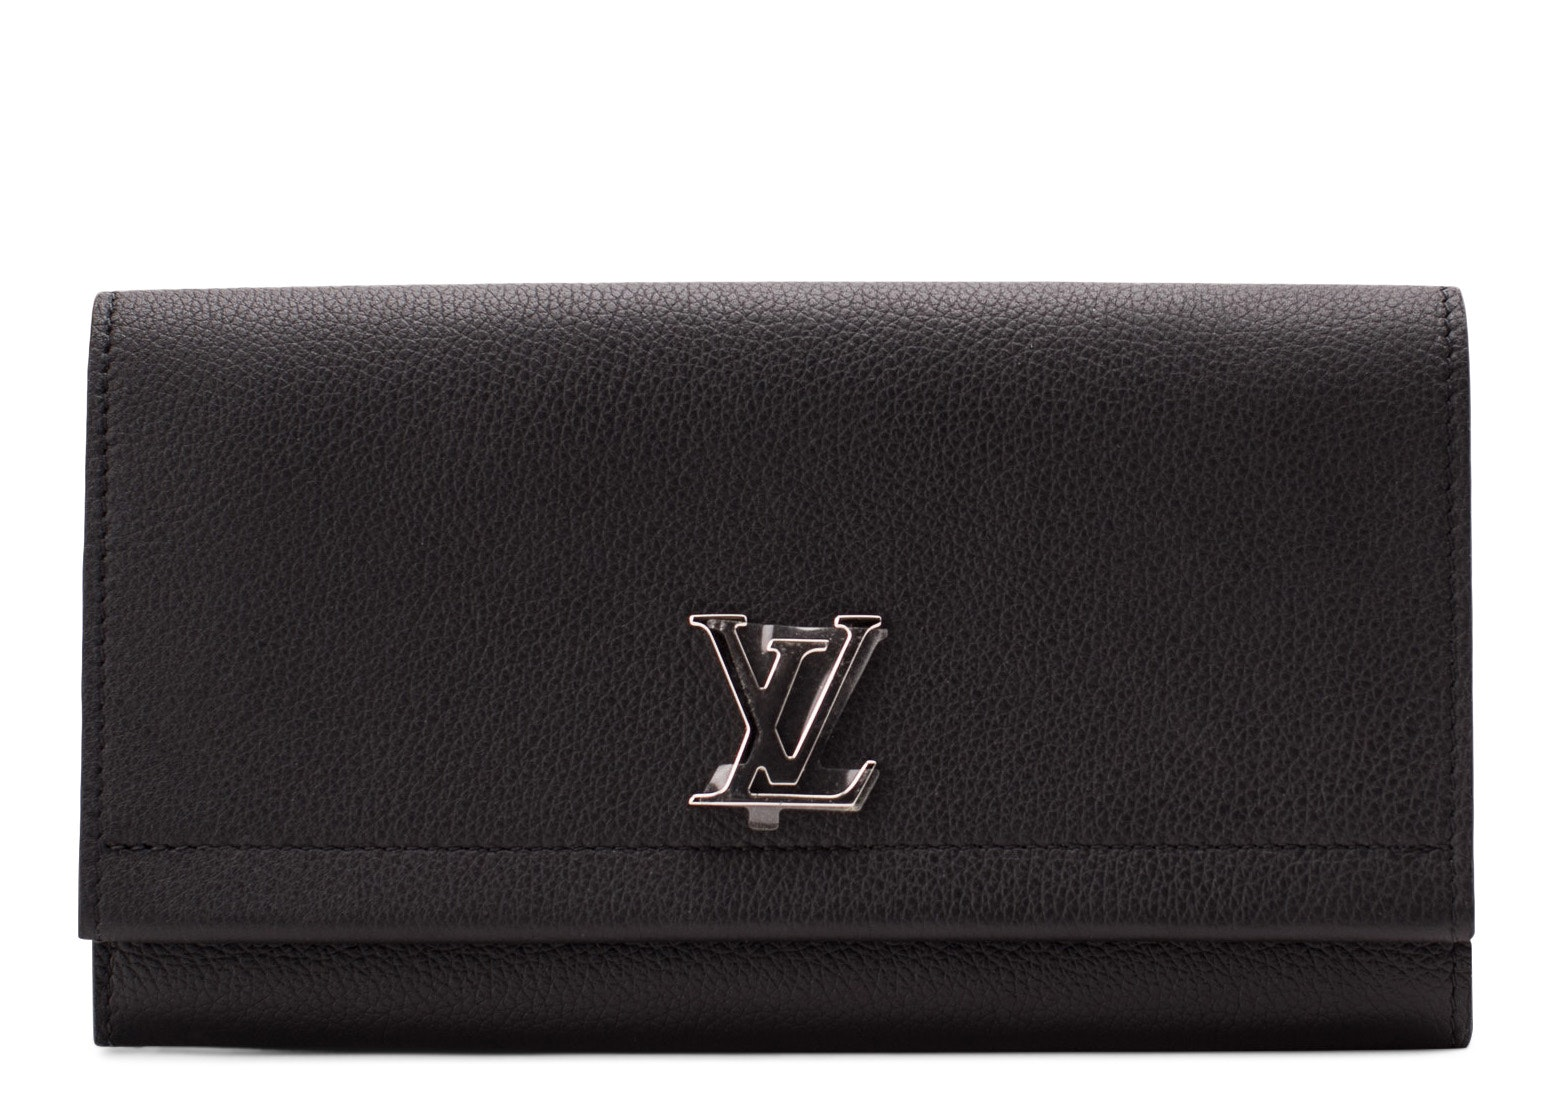 Louis Vuitton Wallet Lockme II Noir Black